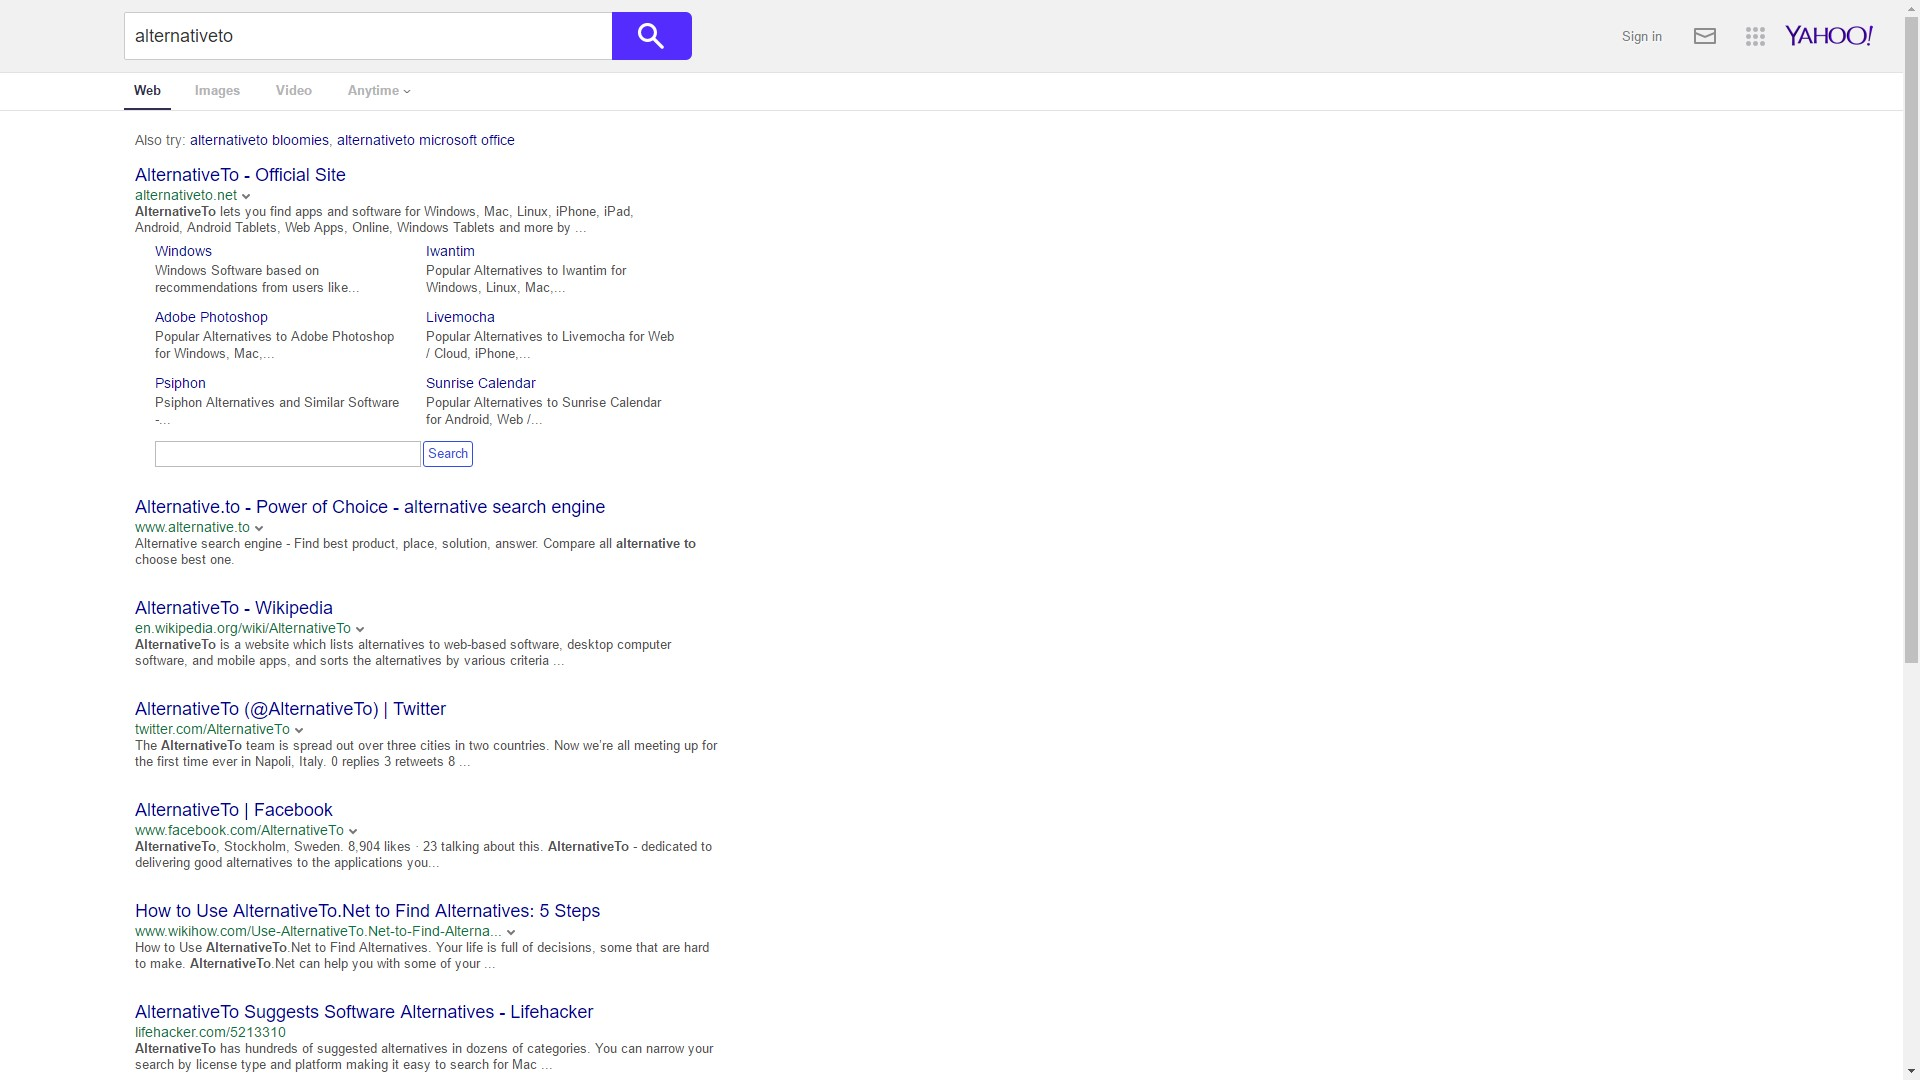 It's Possible To Update Thermation On Yahoo! Search Or Report It As  Discontinued, Duplicated